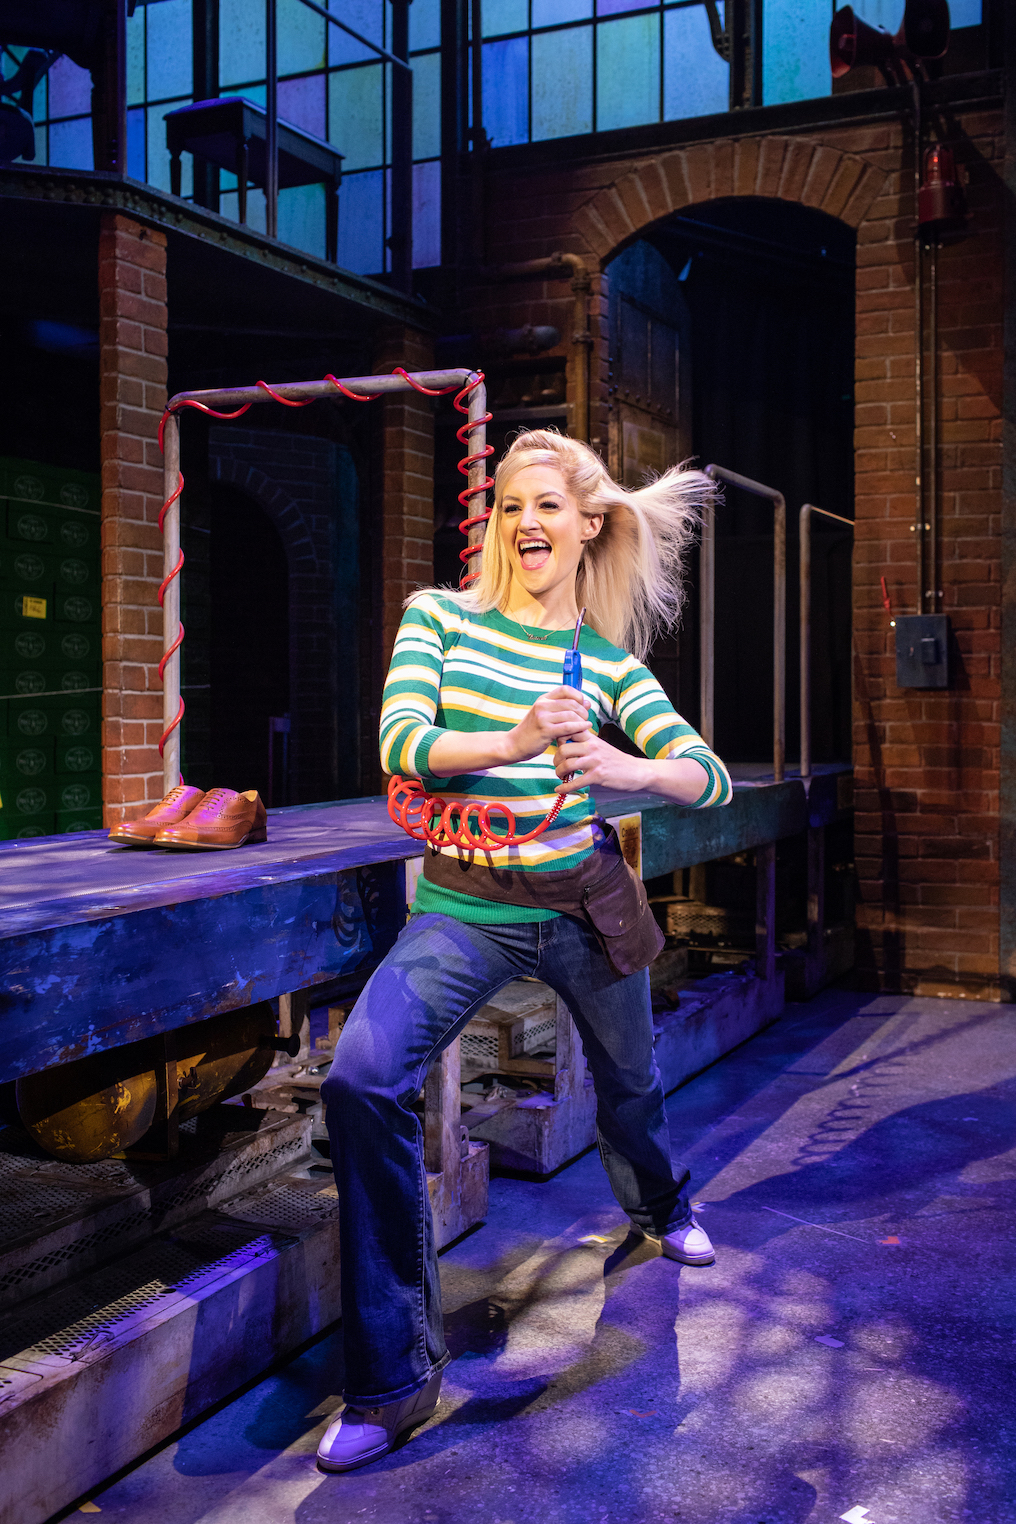 Kinky Boots starring Paula Lane at Cardiff's Wales Millennium Centre until August 3, 2019.